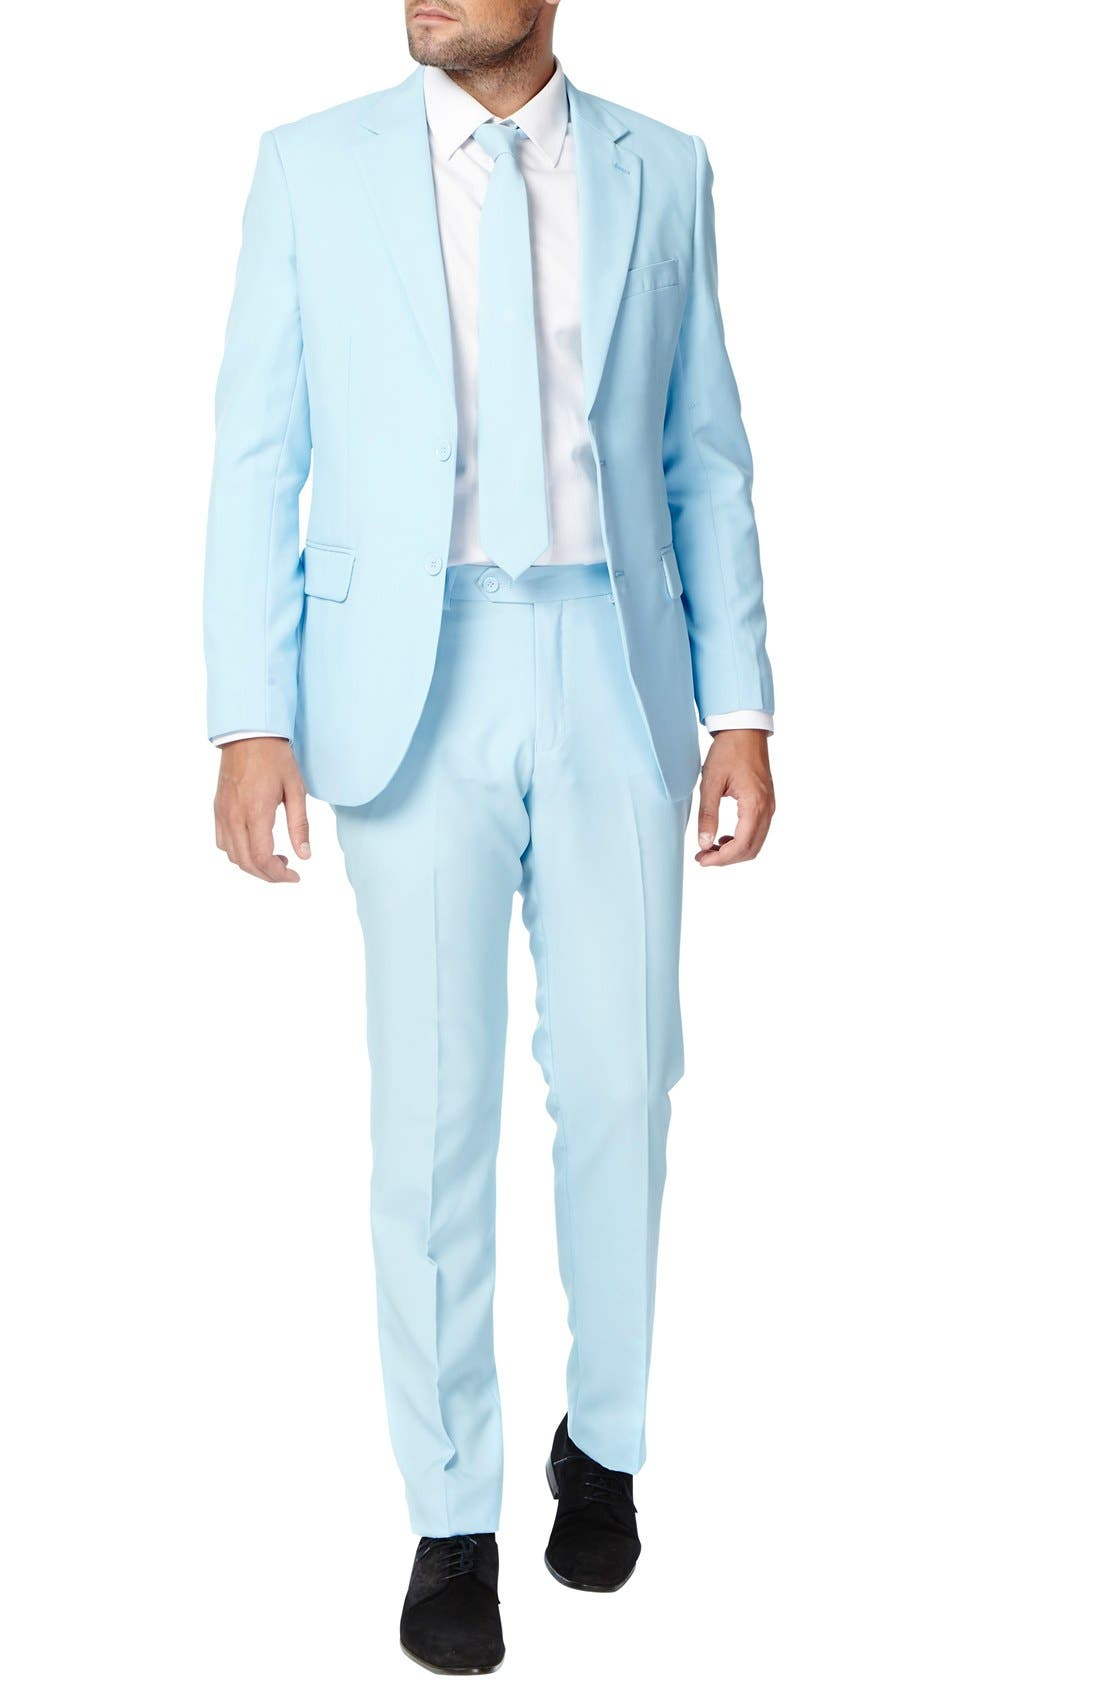 'Cool Blue' Trim Fit Two-Piece Suit with Tie,                             Main thumbnail 1, color,                             Blue